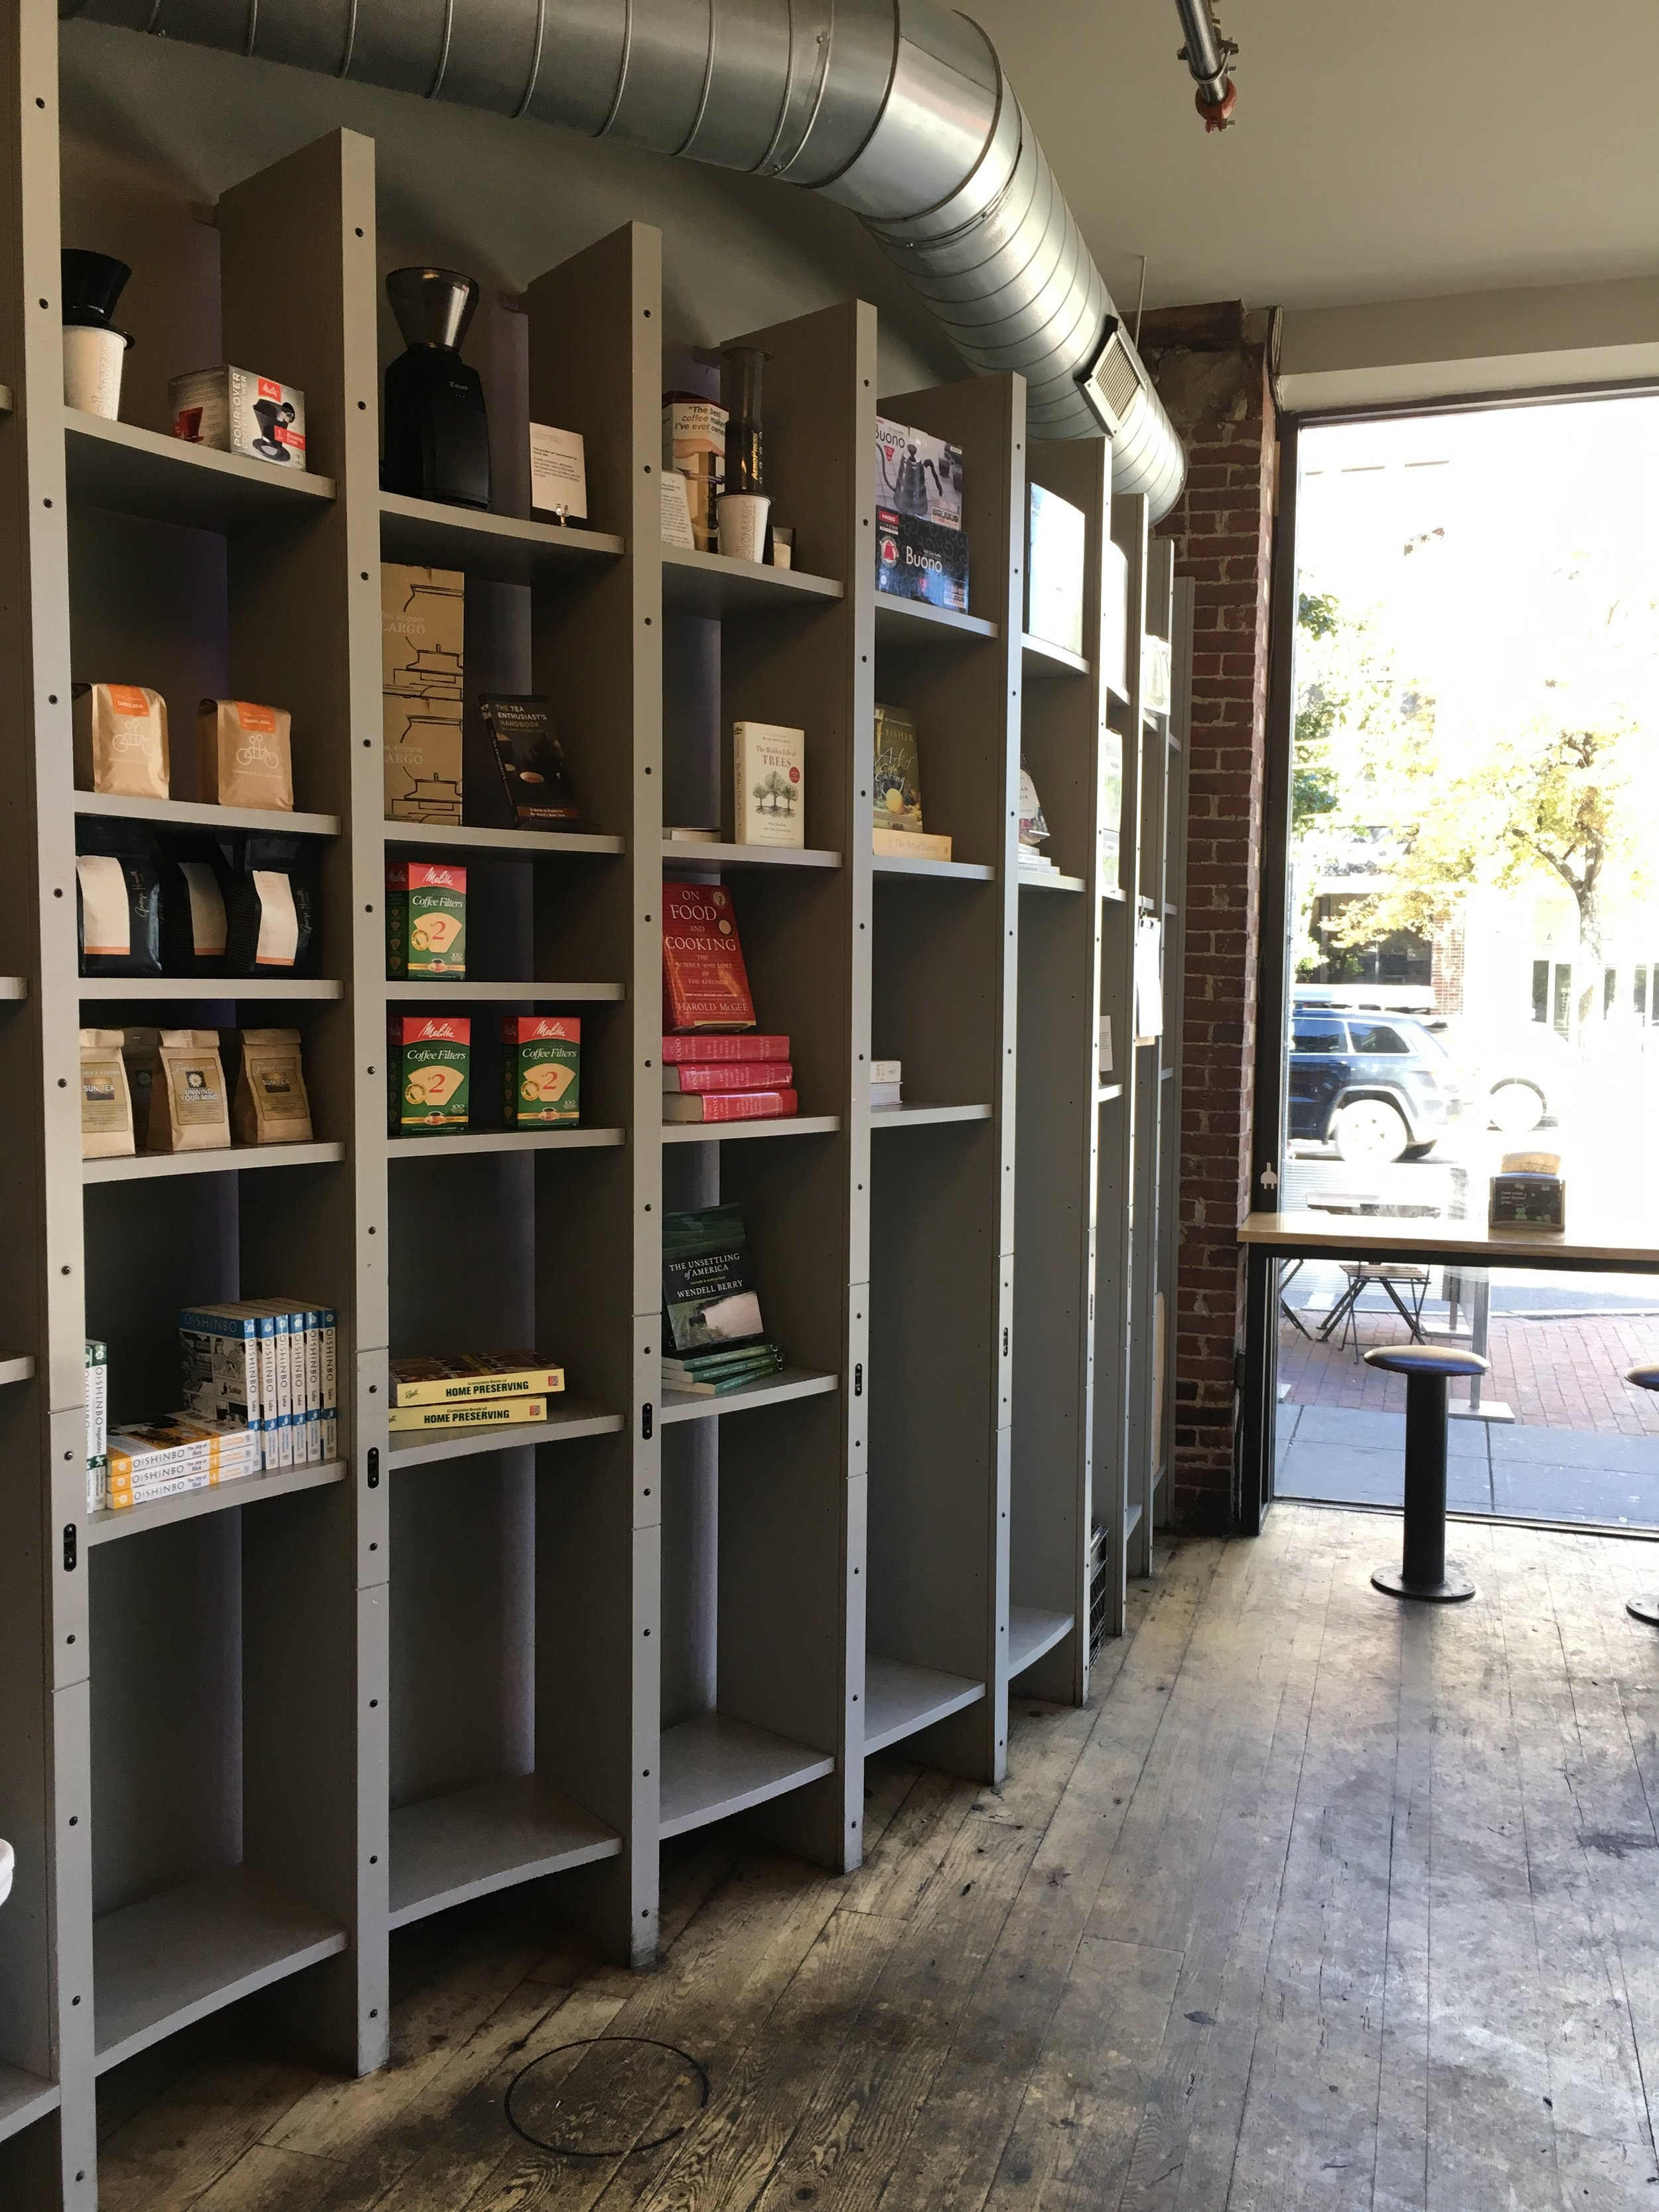 Locavore books and products